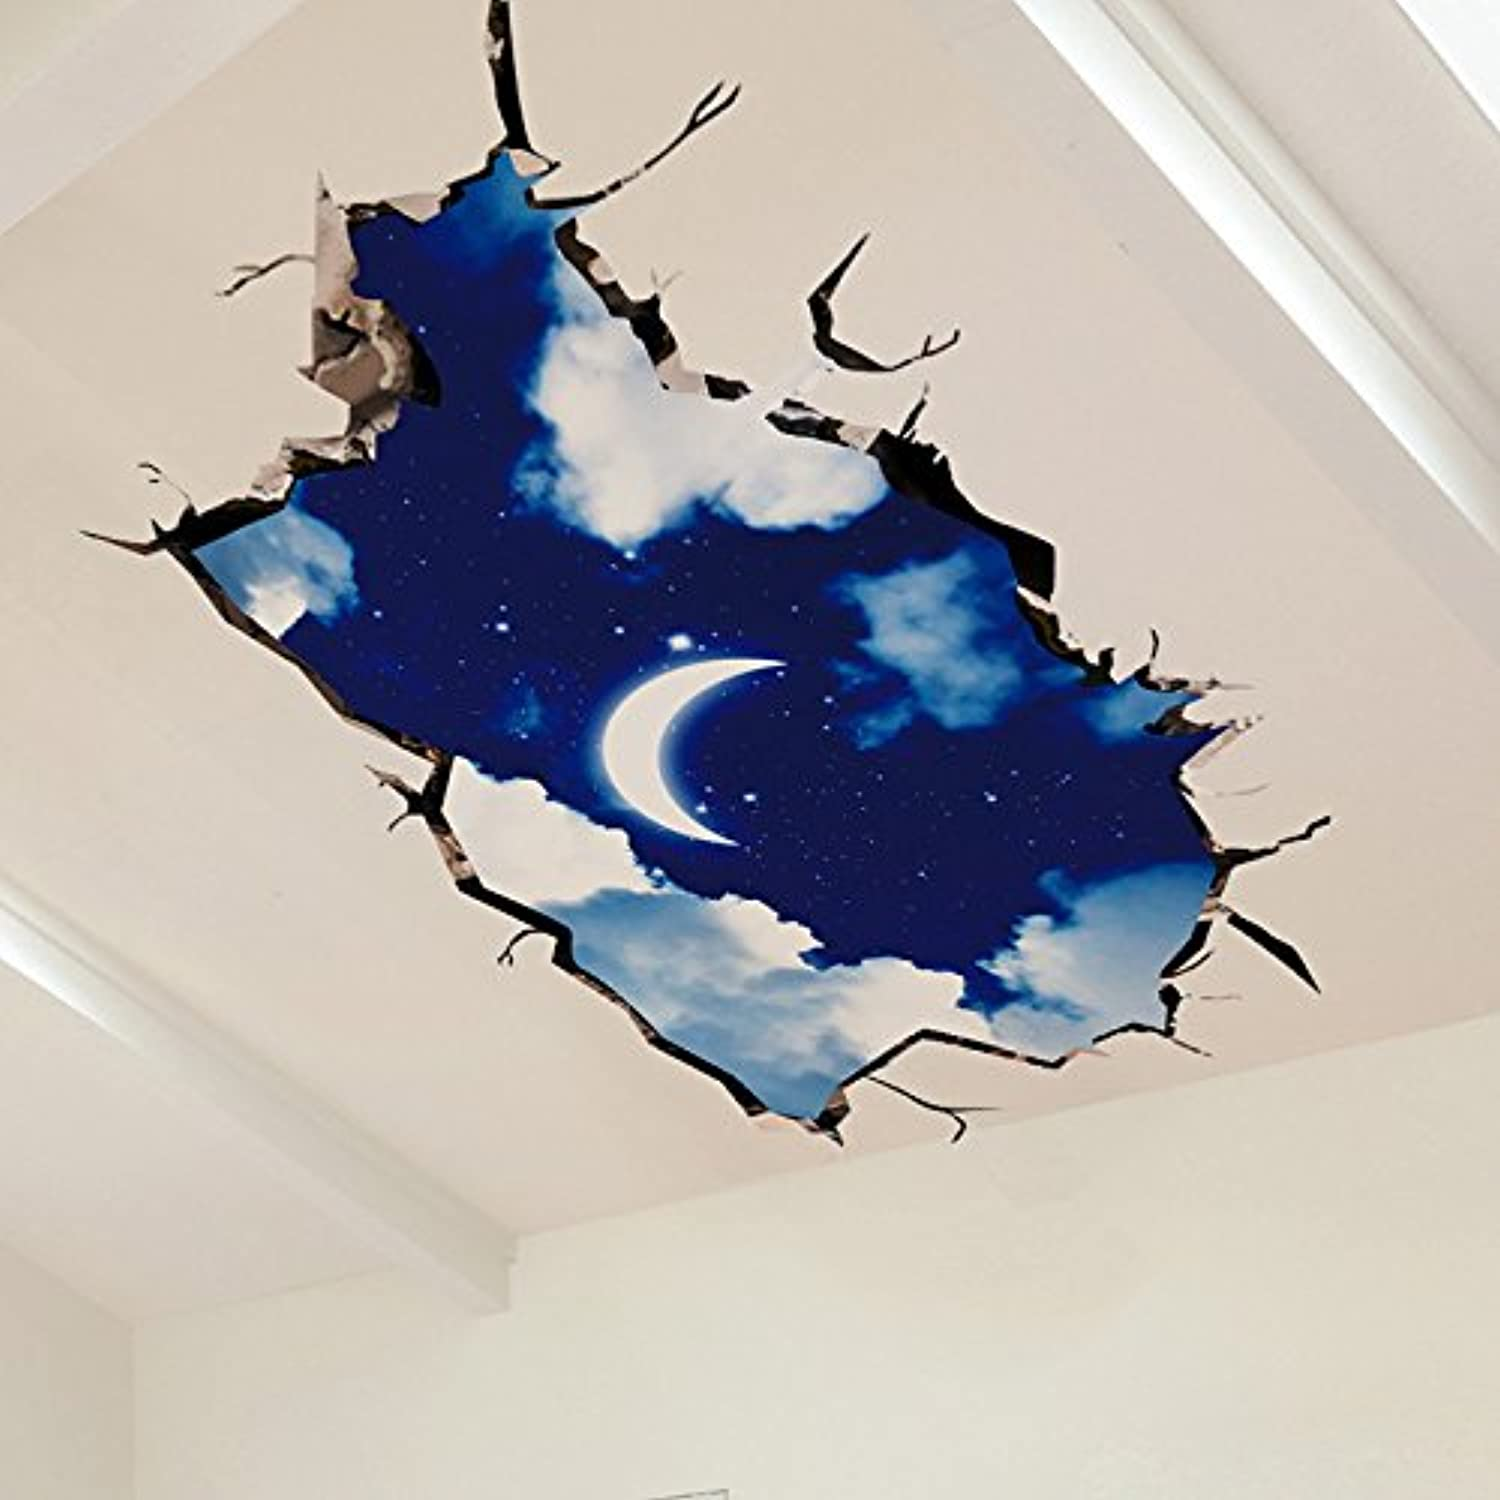 Znzbzt Creative 3D Simulation Space Moon Sky Decorative Ceiling Wall Sticker on Living Room Floor.